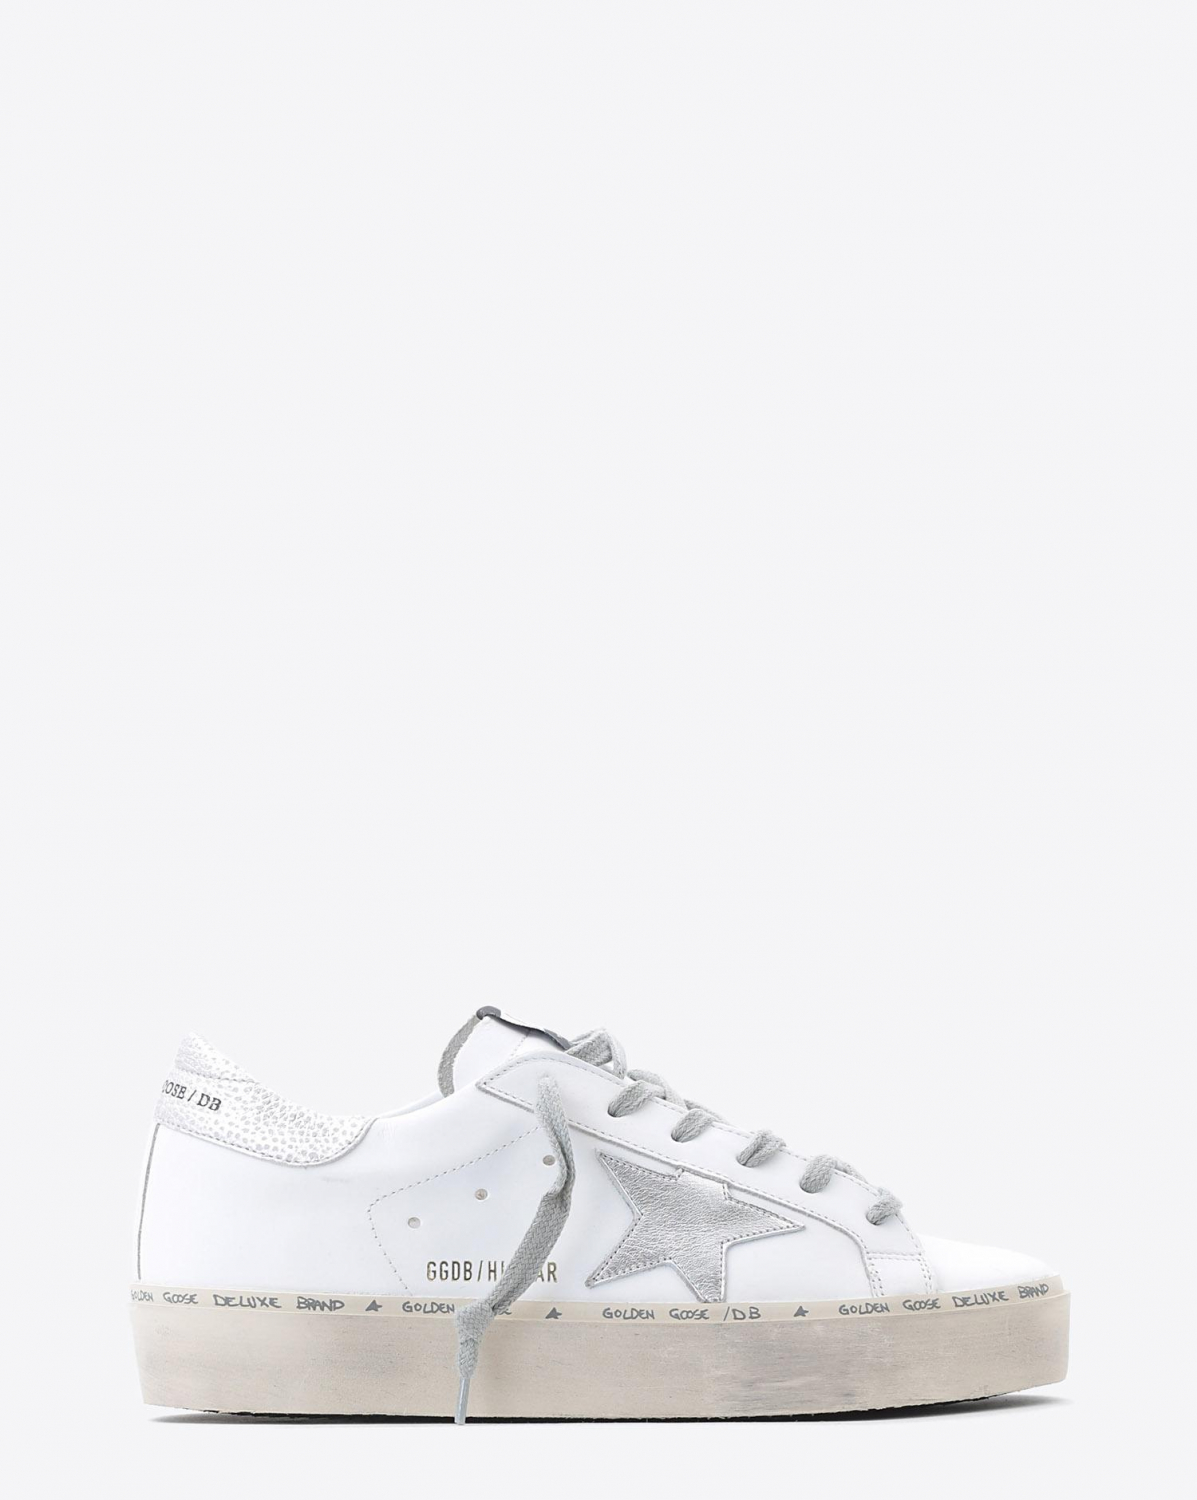 Golden Goose Woman Pré-Collection Sneakers Hi Star- White Leather - Shiny Star